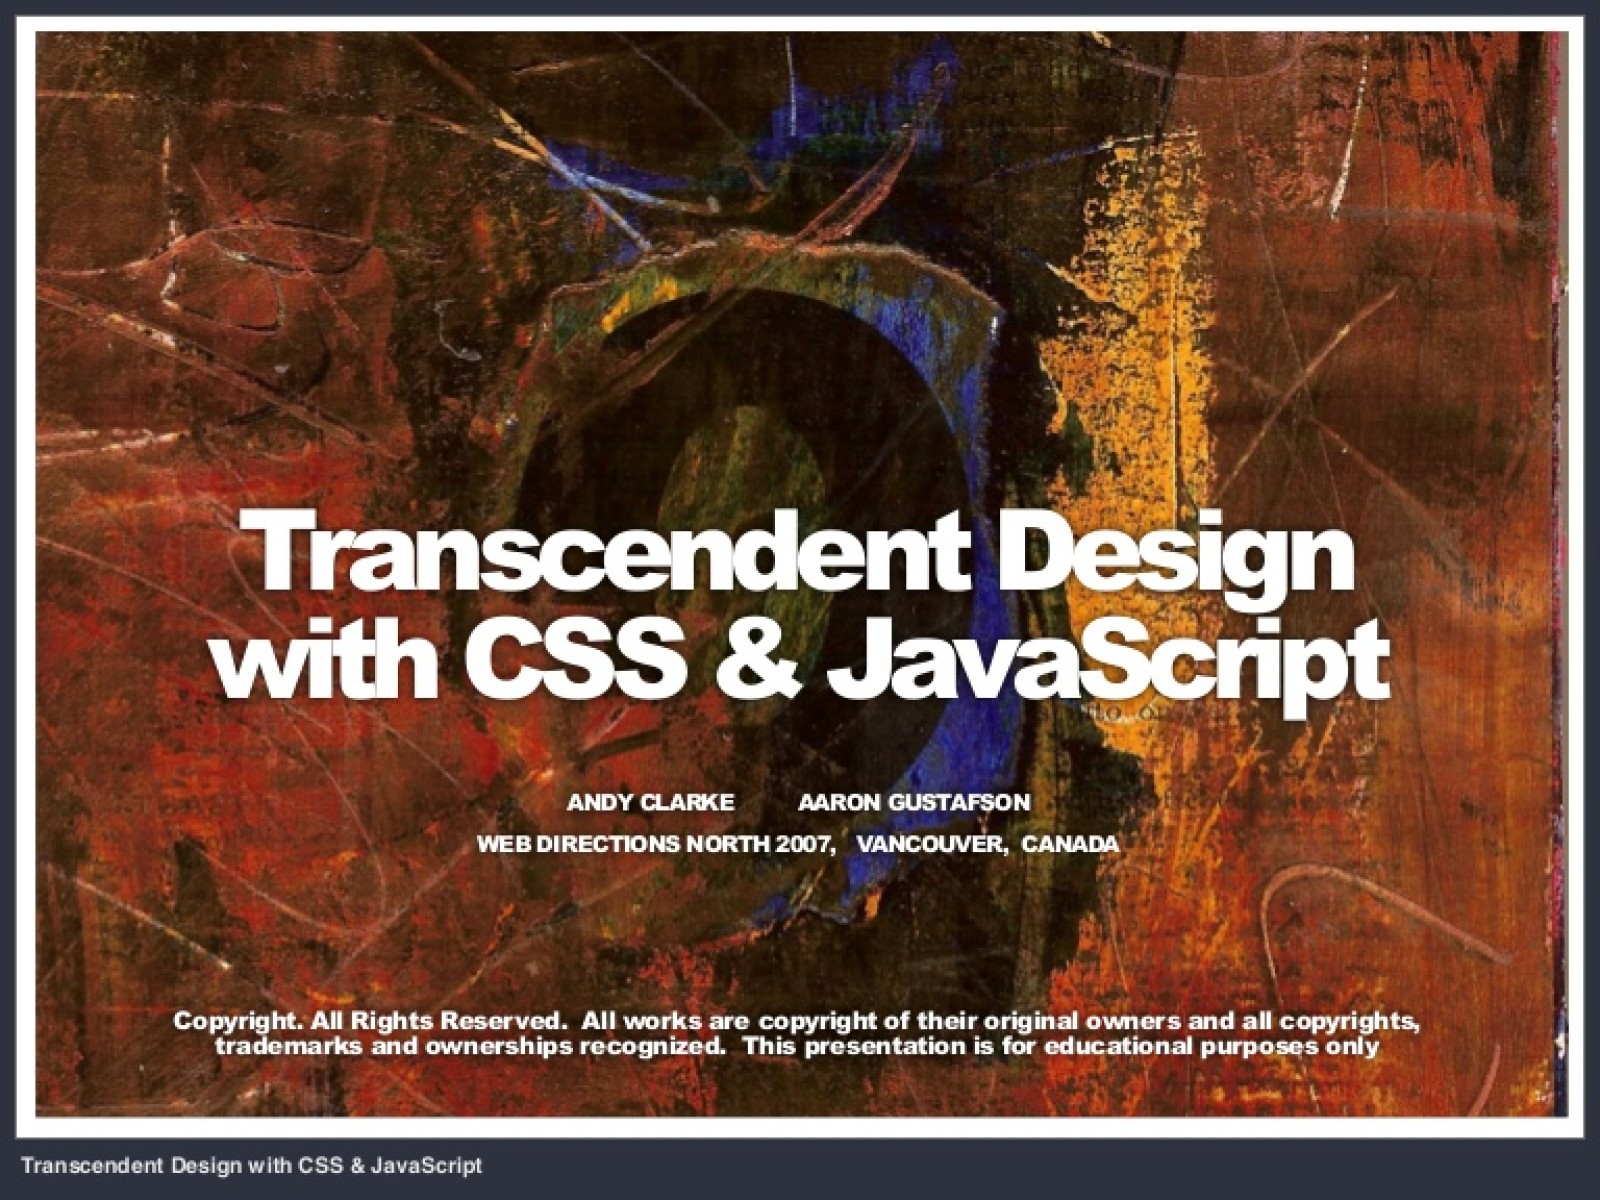 Transcendent Design with CSS & JavaScript